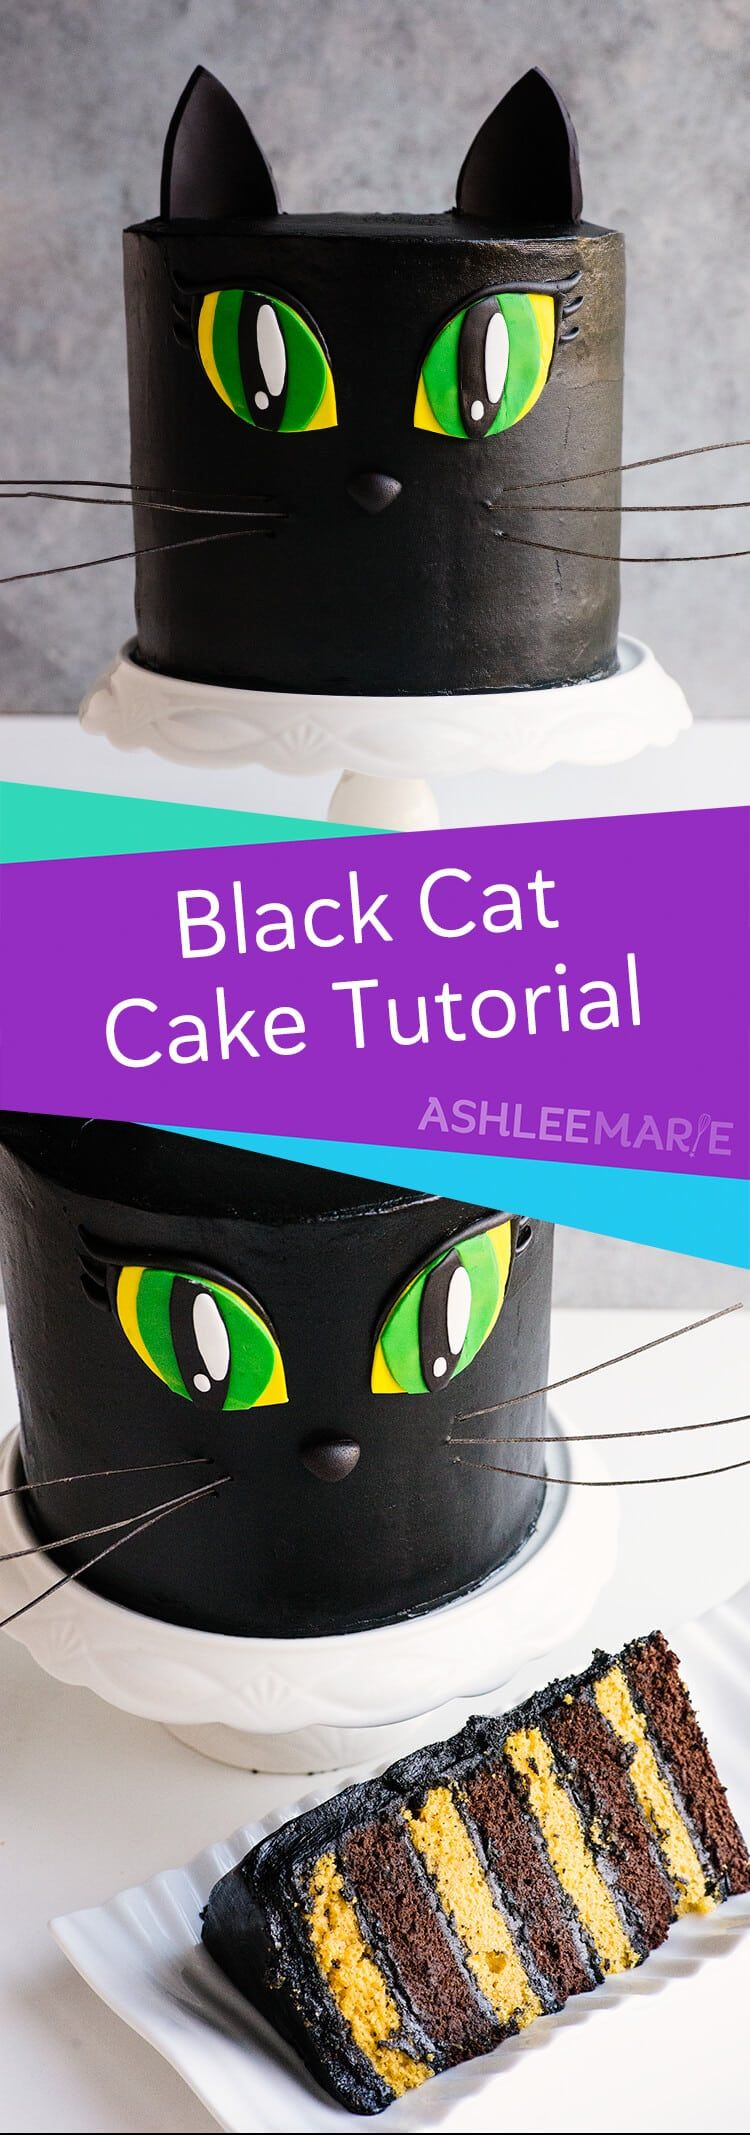 Black Cat Cake Video Tutorial - with Pumpkin and Chocolate Cake recipes | Ashlee Marie - real fun with real food